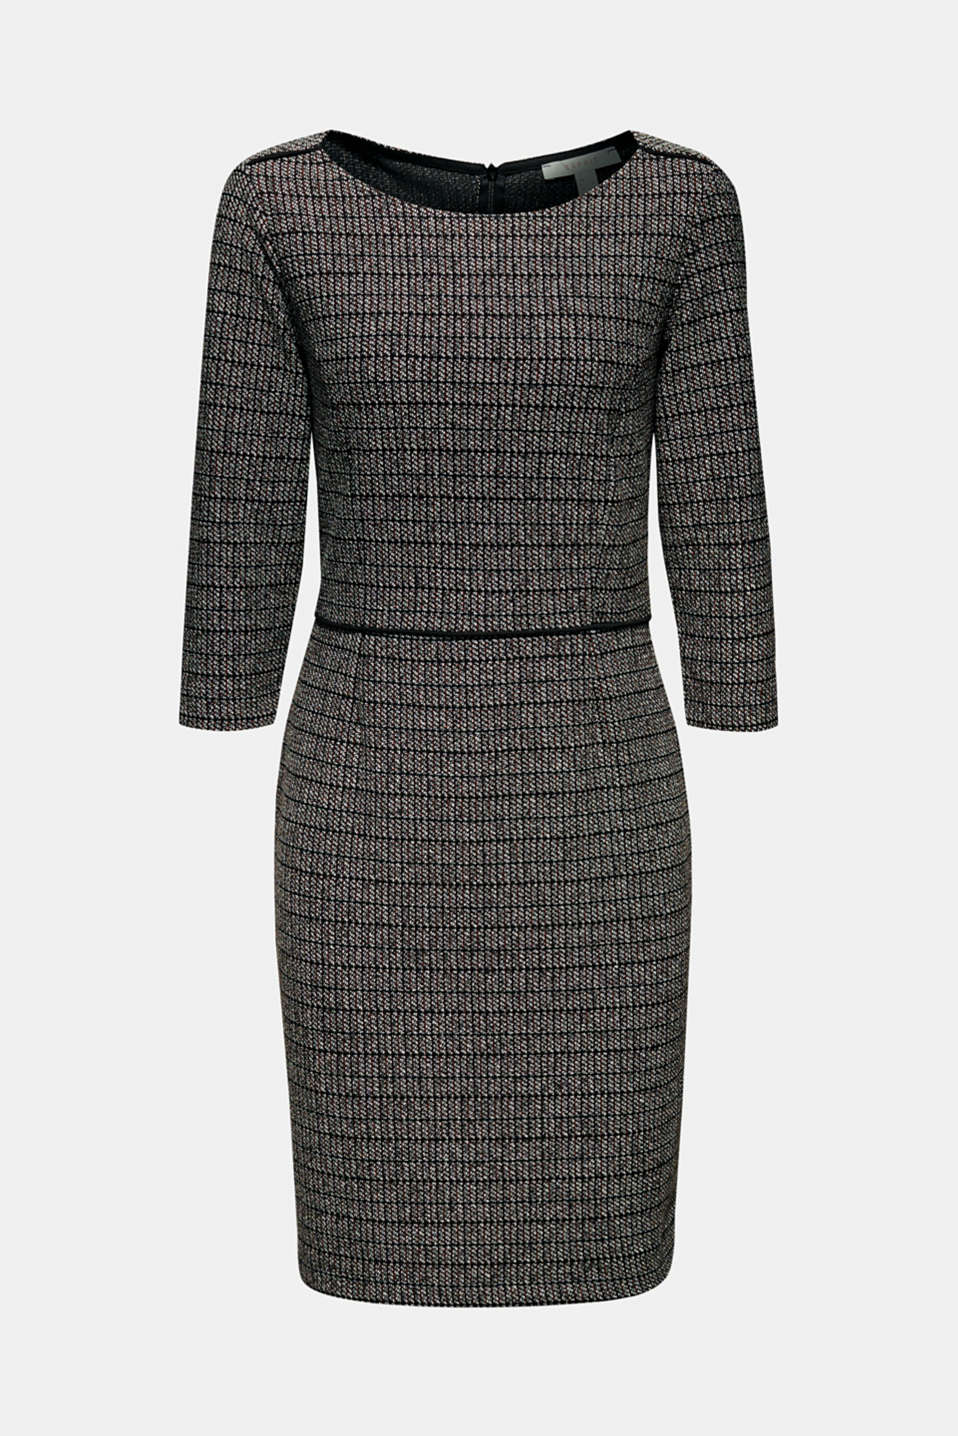 Stretch jersey dress with a jacquard check pattern, BLACK, detail image number 5